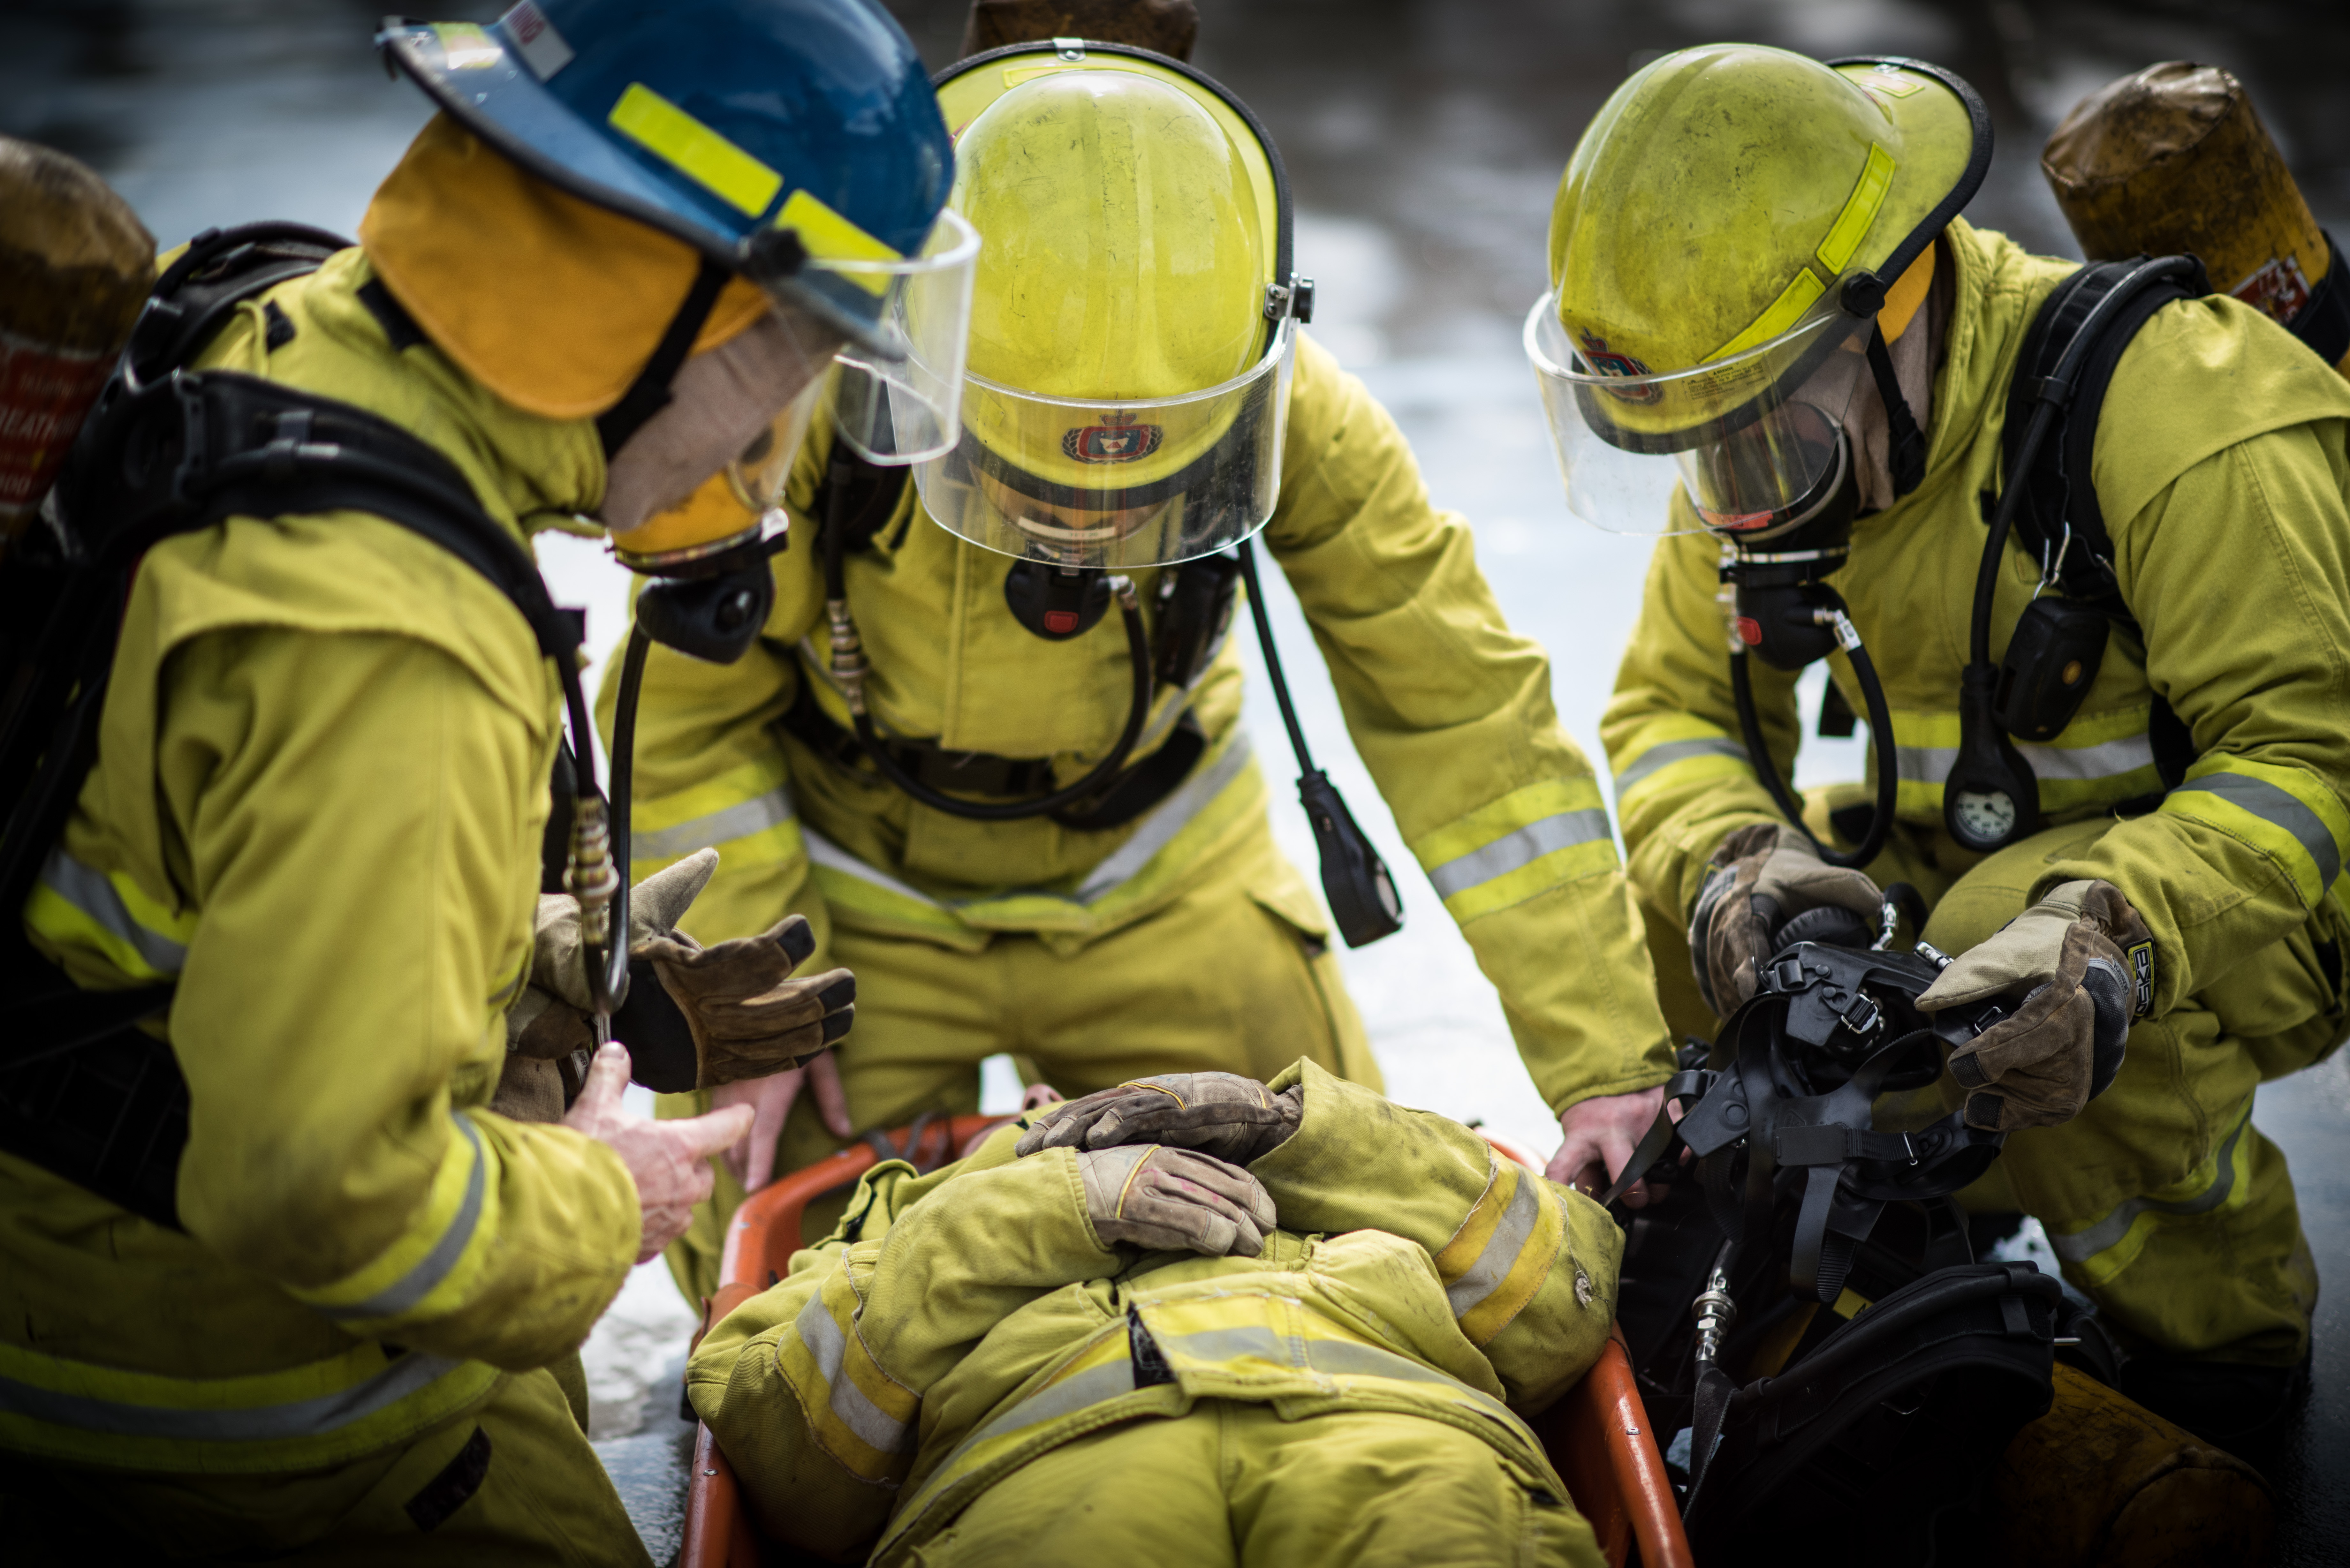 Red Cross Emergency Medical Responder Courses